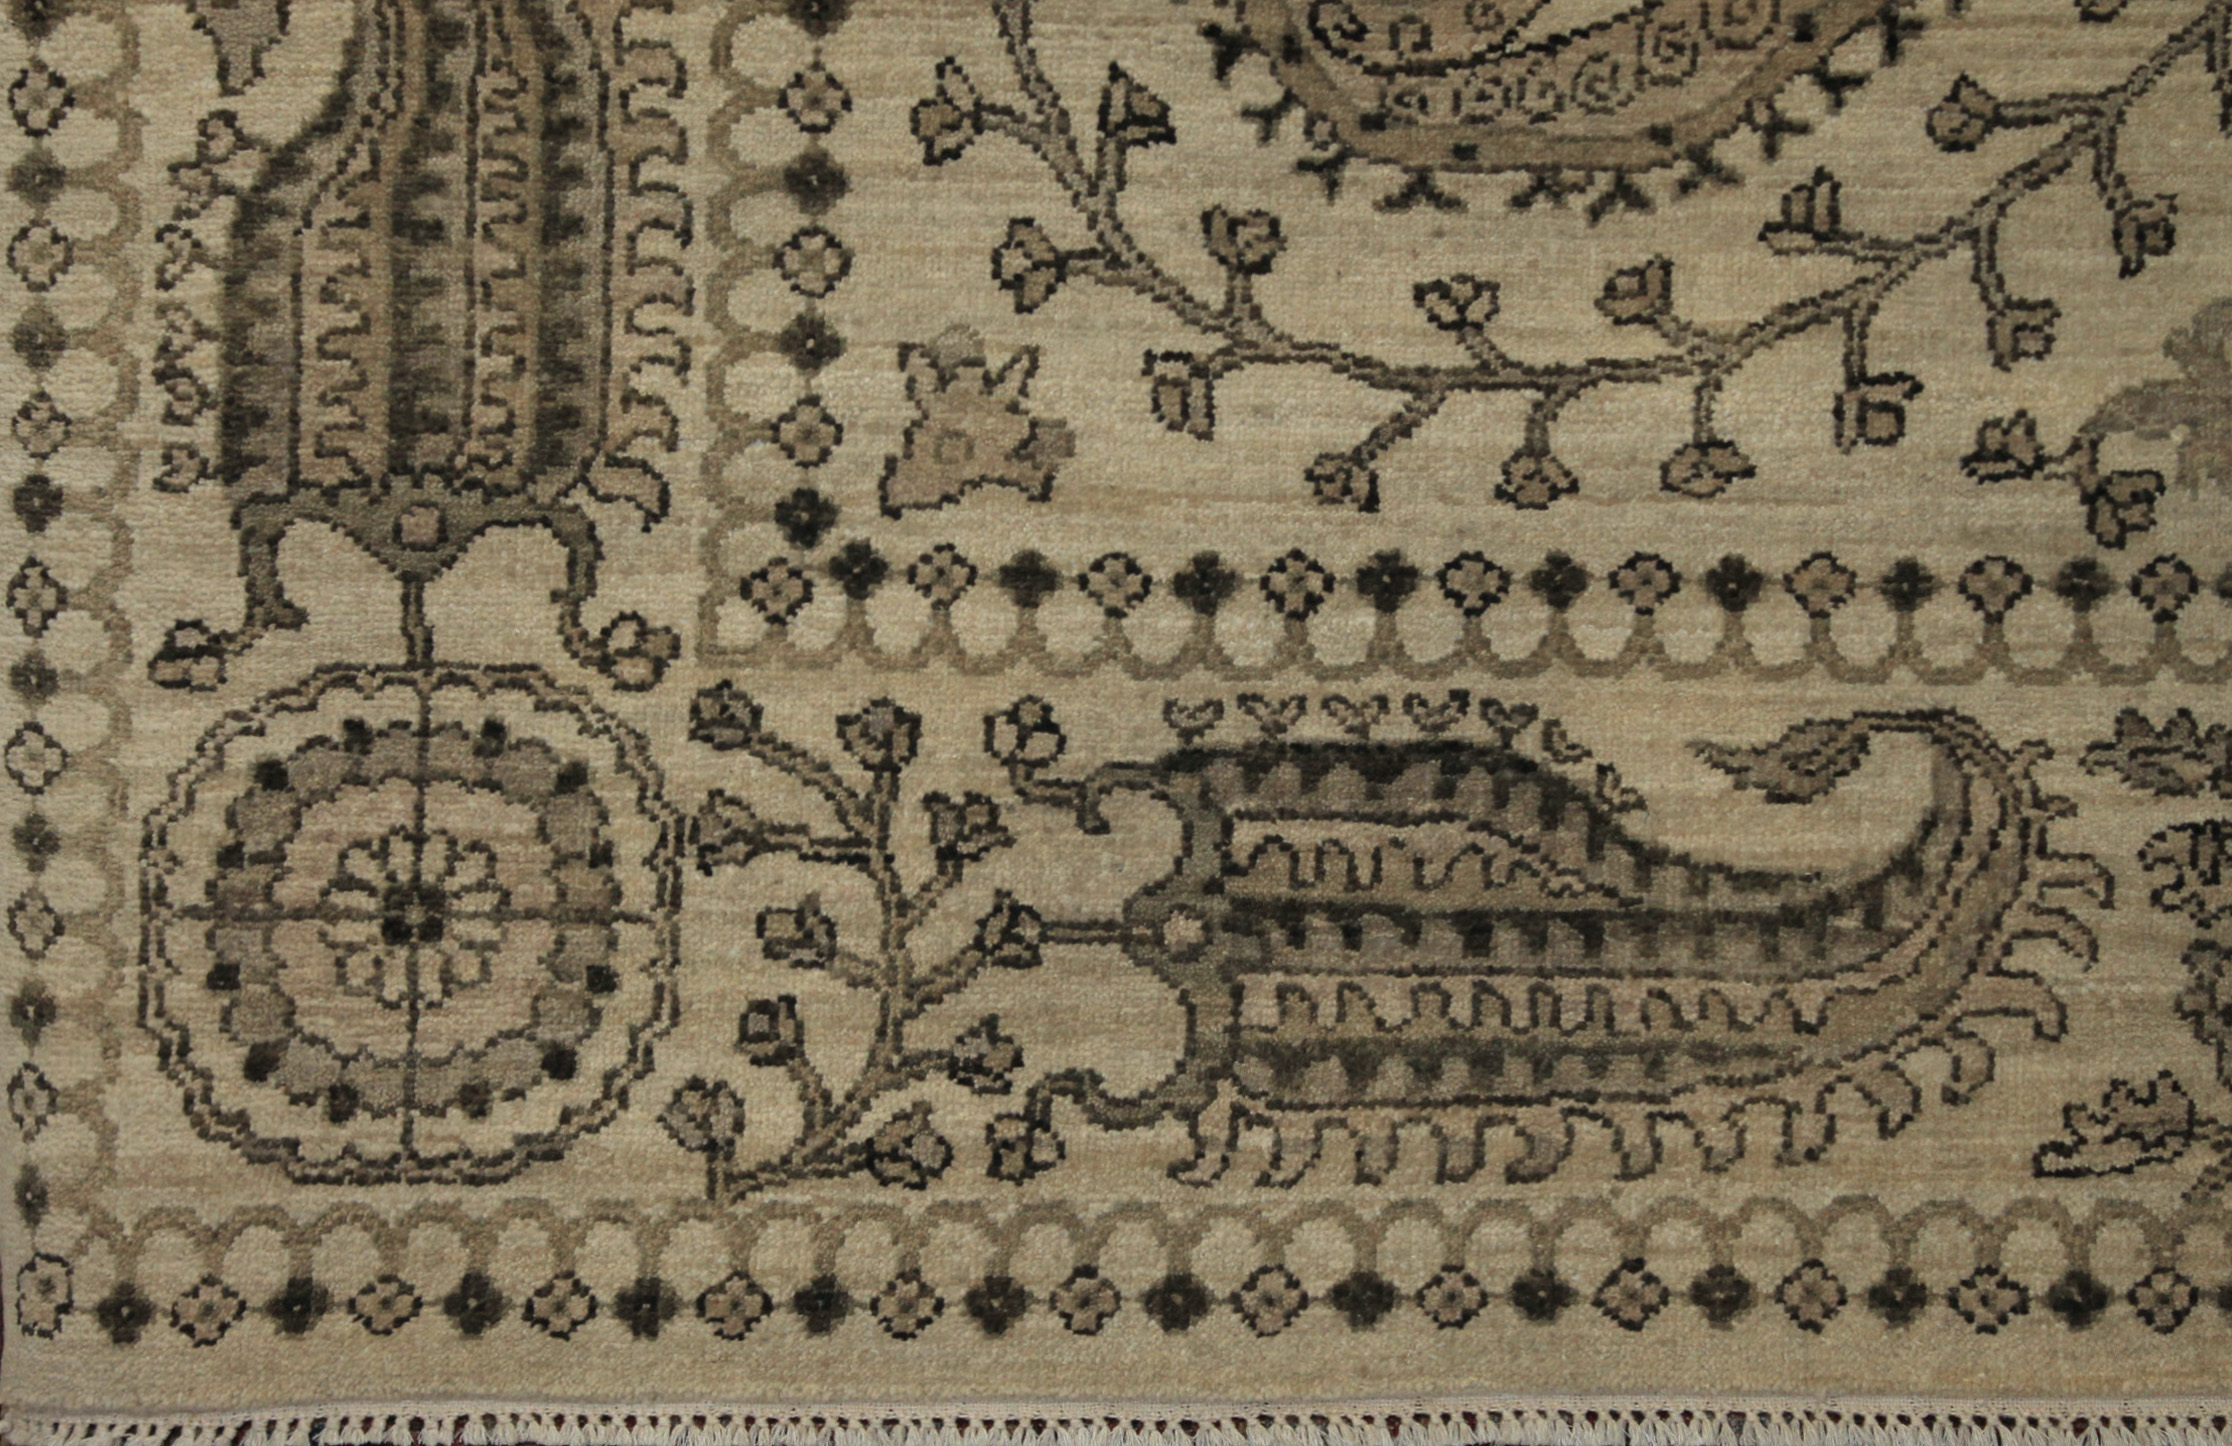 8x10 Antique Revival Hand Knotted Wool Area Rug - MR16198